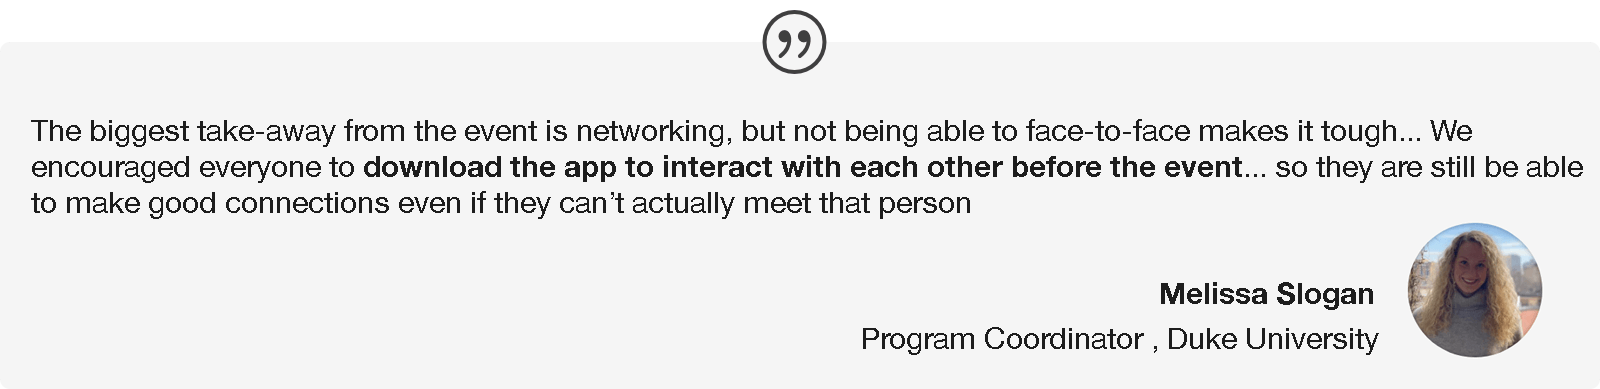 Networking is tough without face-to-face, but using the app to do pre-networking helps a lot